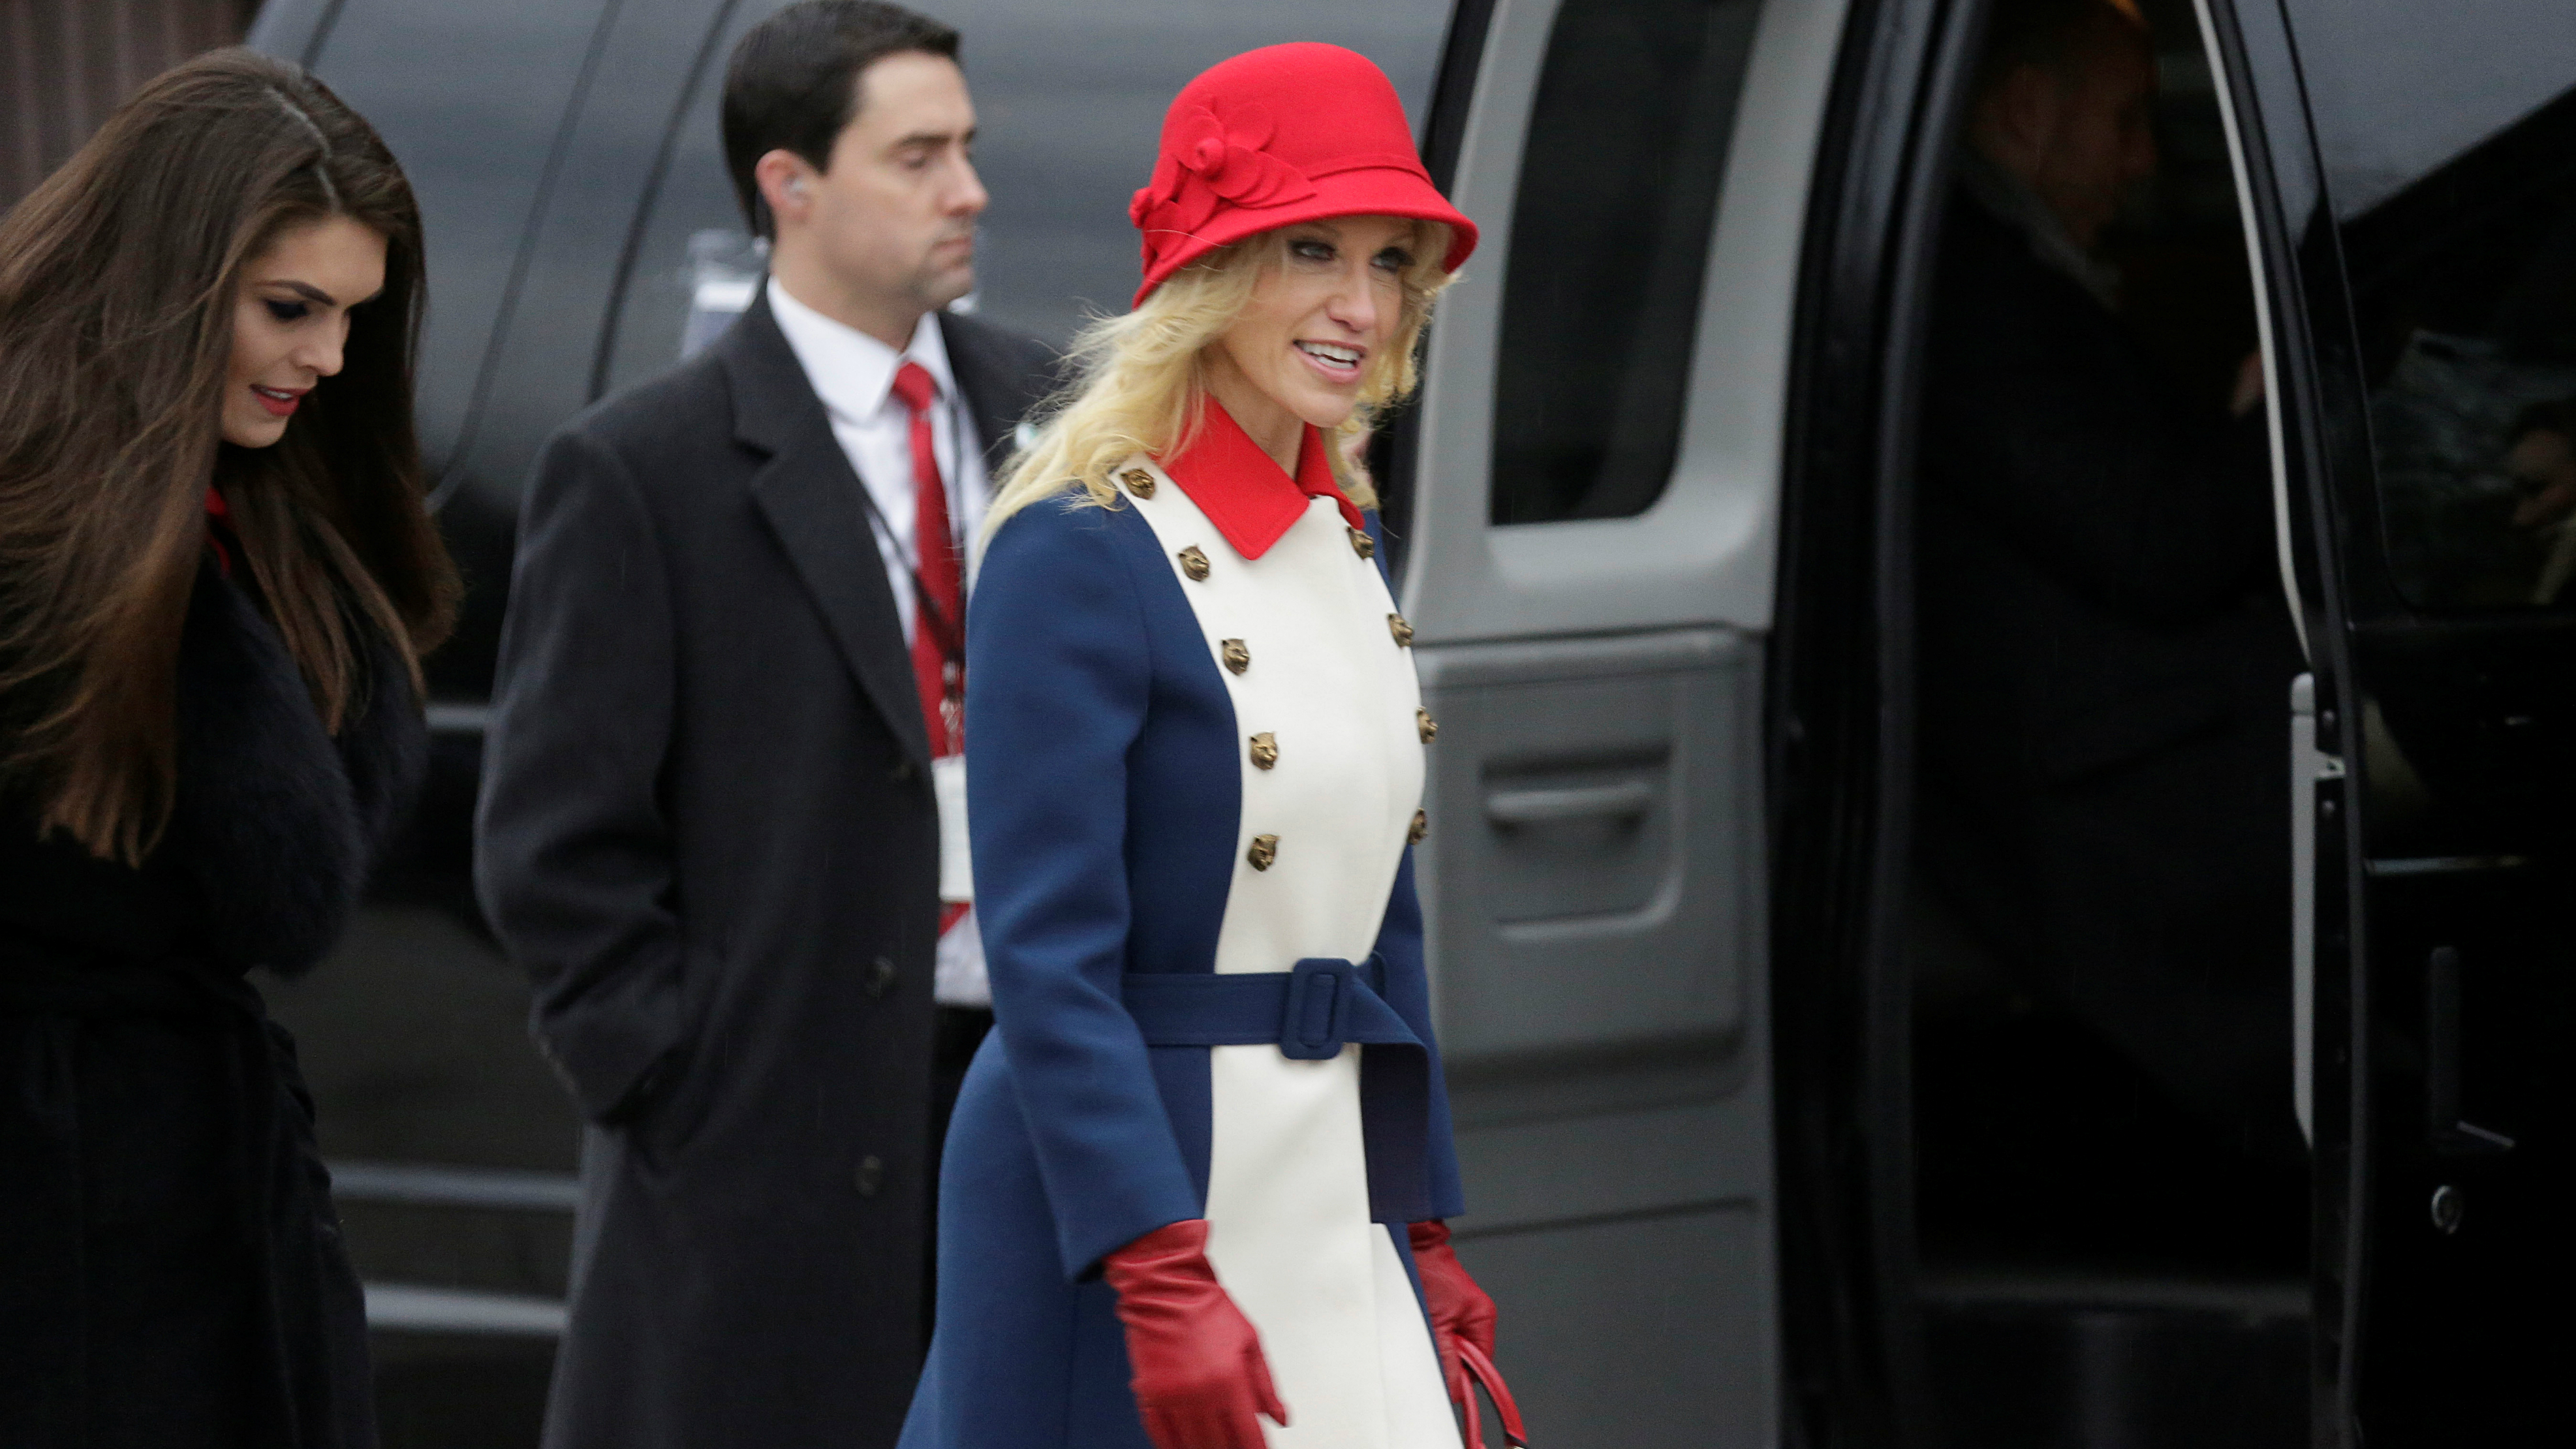 Kellyanne conway wore a 3600 red white and blue gucci coat to kellyanne conway said her red white and blue gucci coat was trump revolutionary wear ombrellifo Image collections